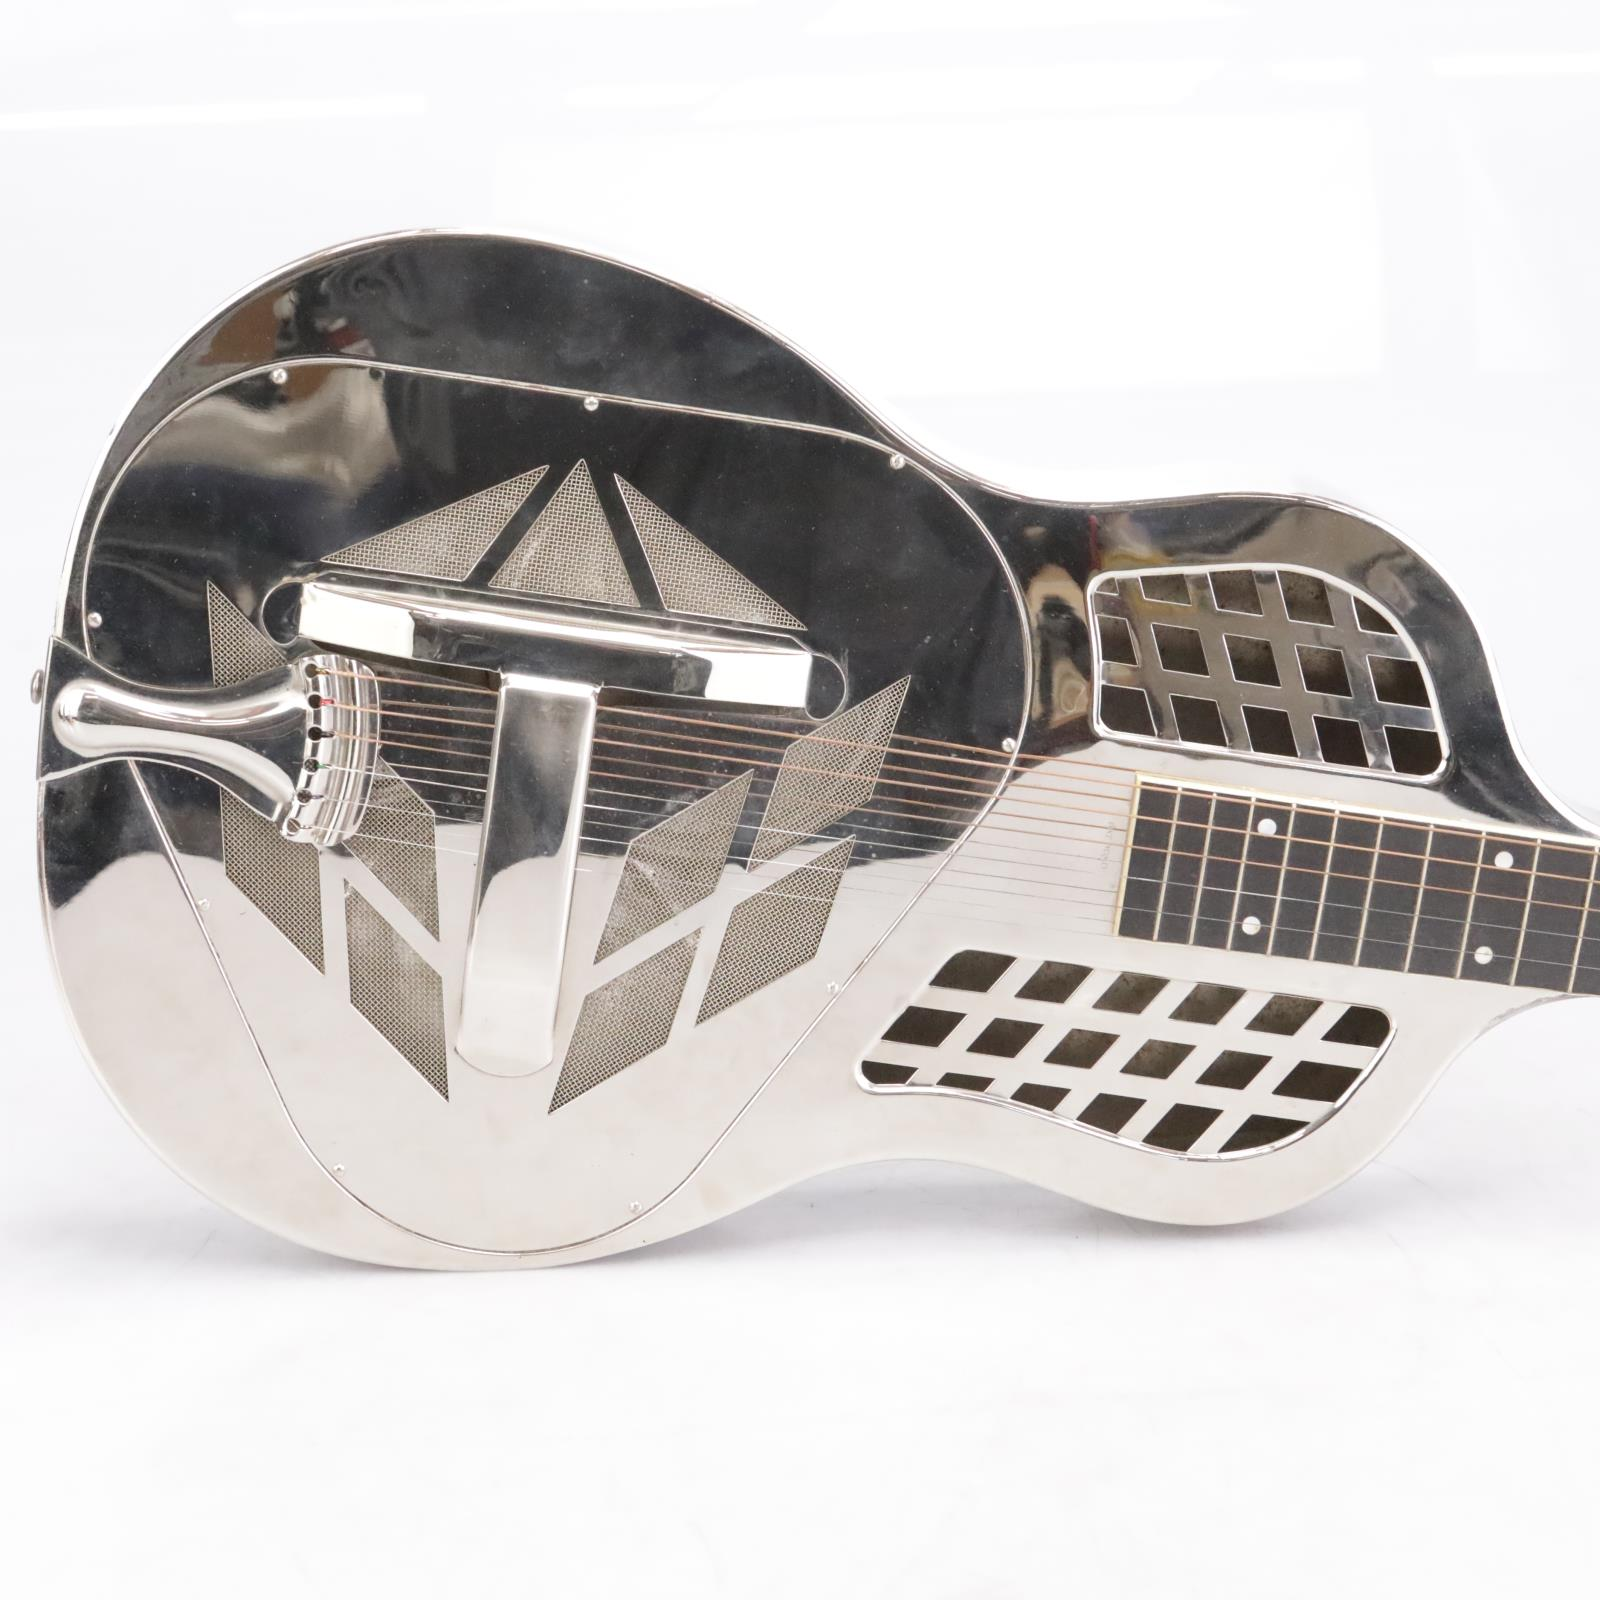 1929 National Style 1 Tricone Lap Steel Square Neck Guitar w/ Case #42351